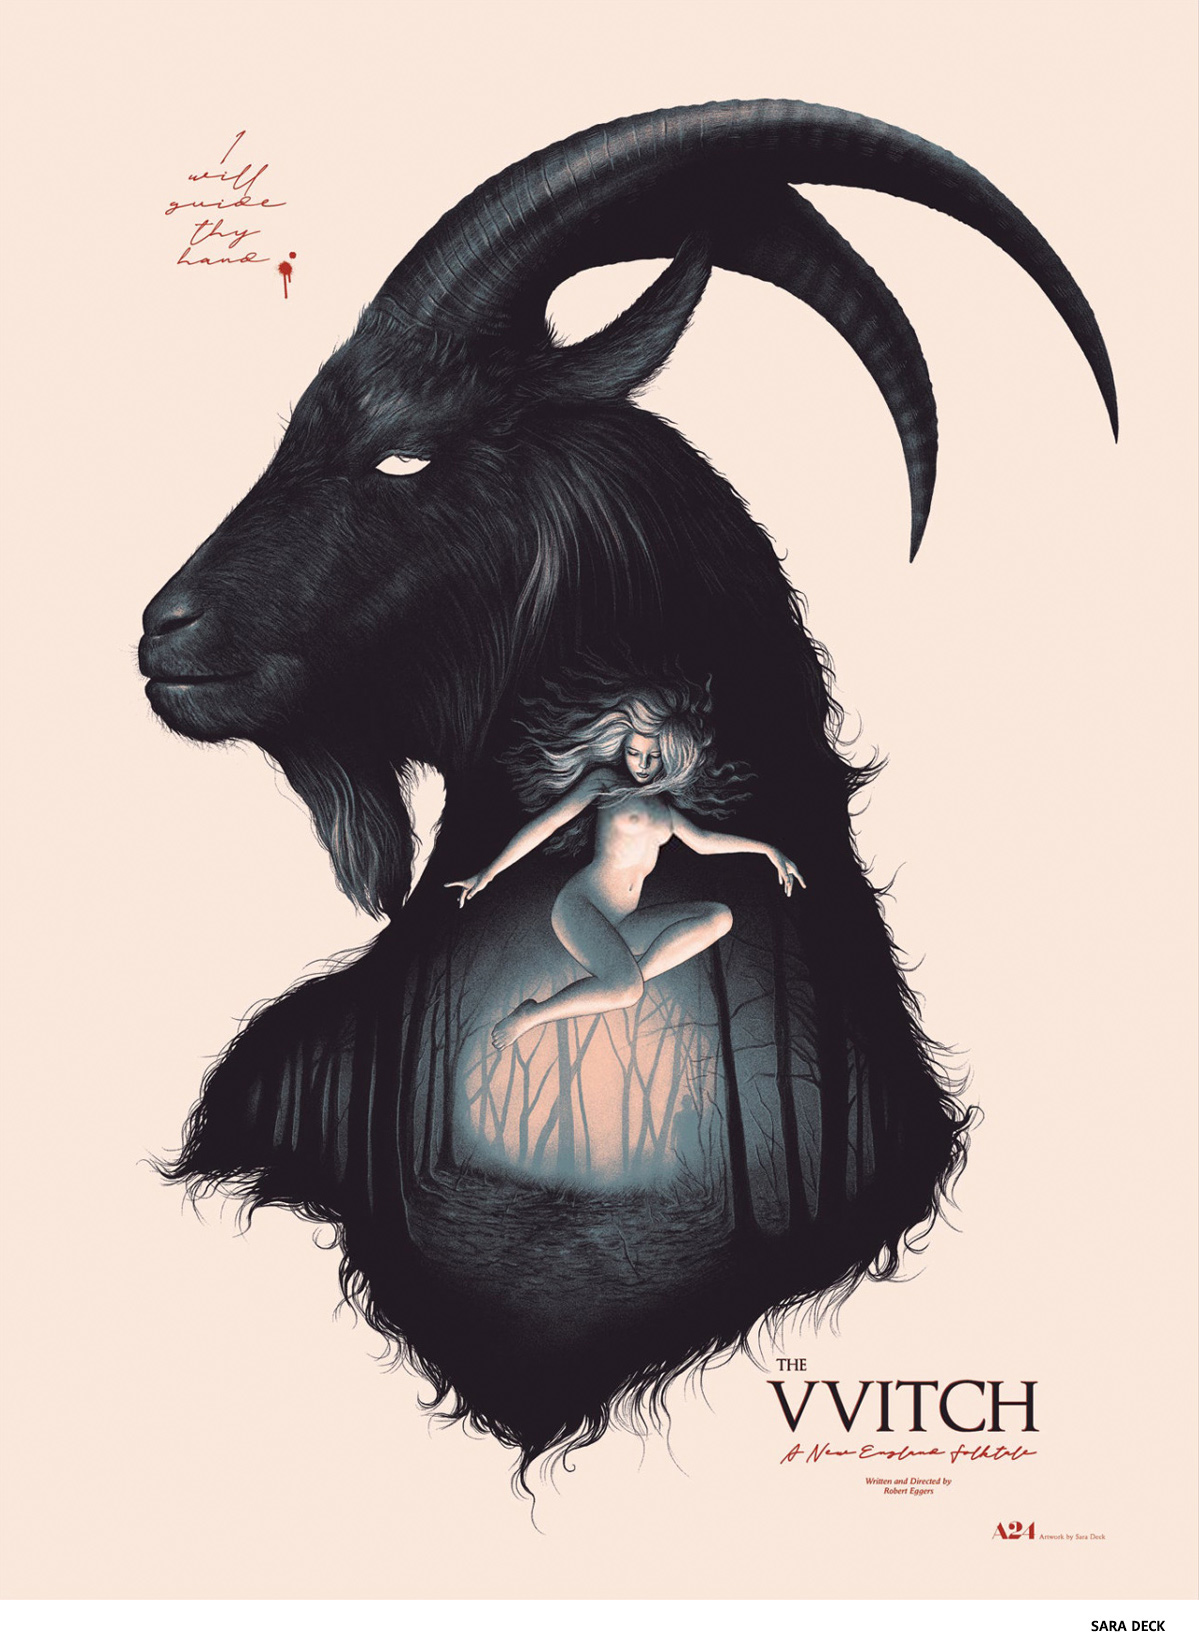 The Witch par Sara Deck